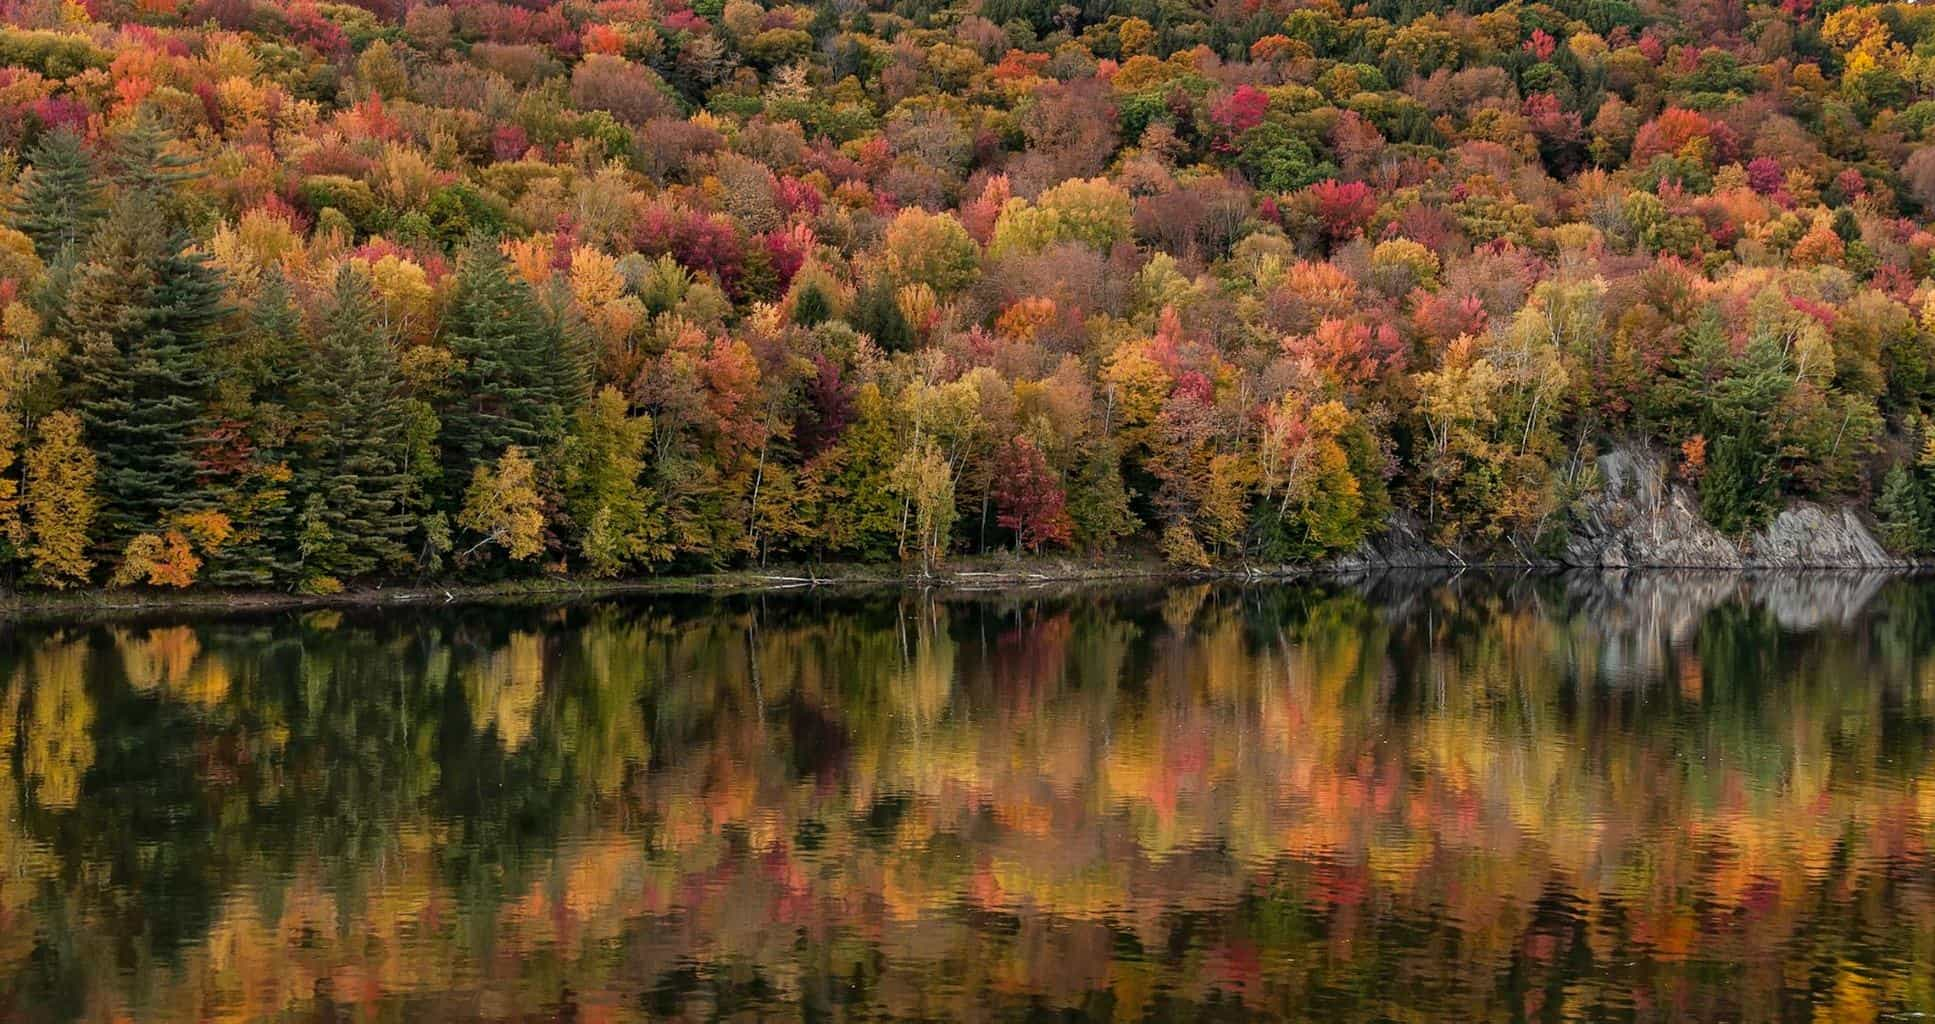 High color has arrived here in Vermont! Taken at the Waterbury Reservoir: